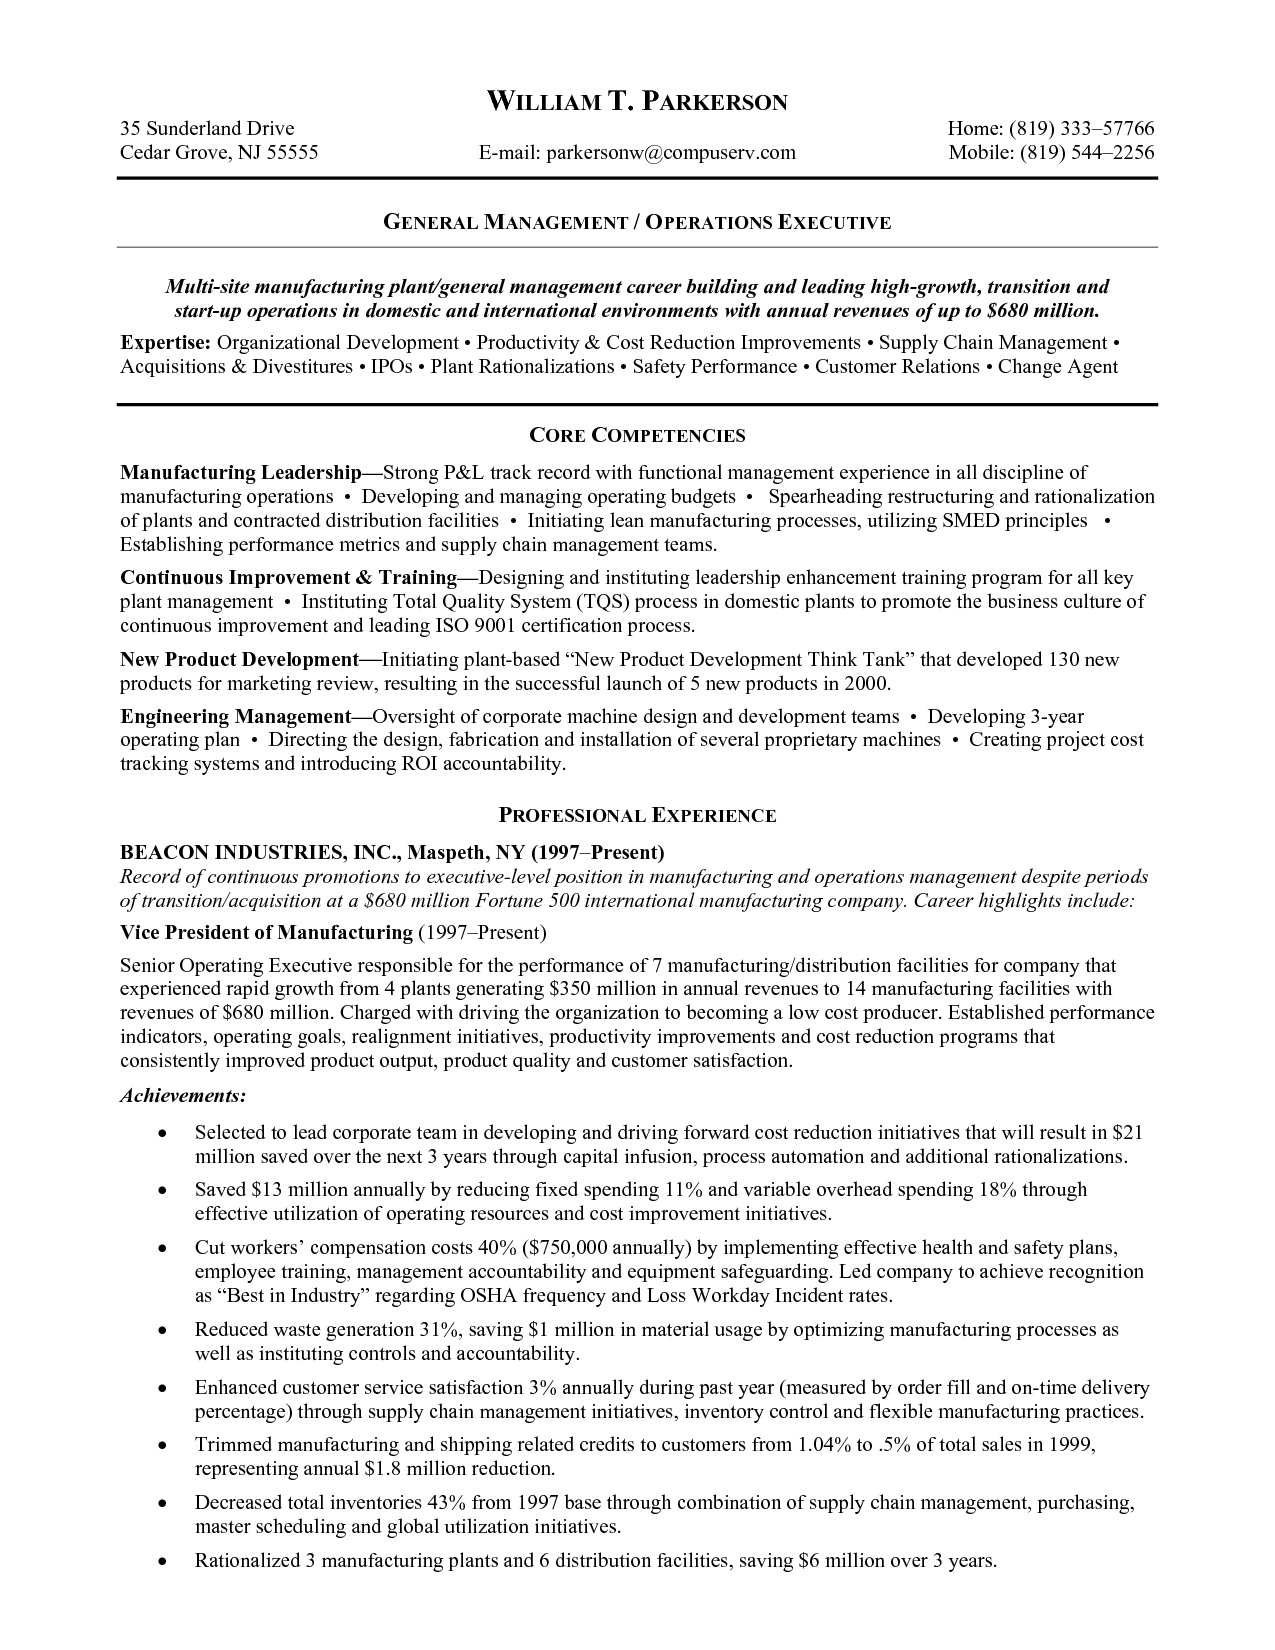 Job Objective For Resume General Manufacturing Resume Samples Objective Examples Free Edit